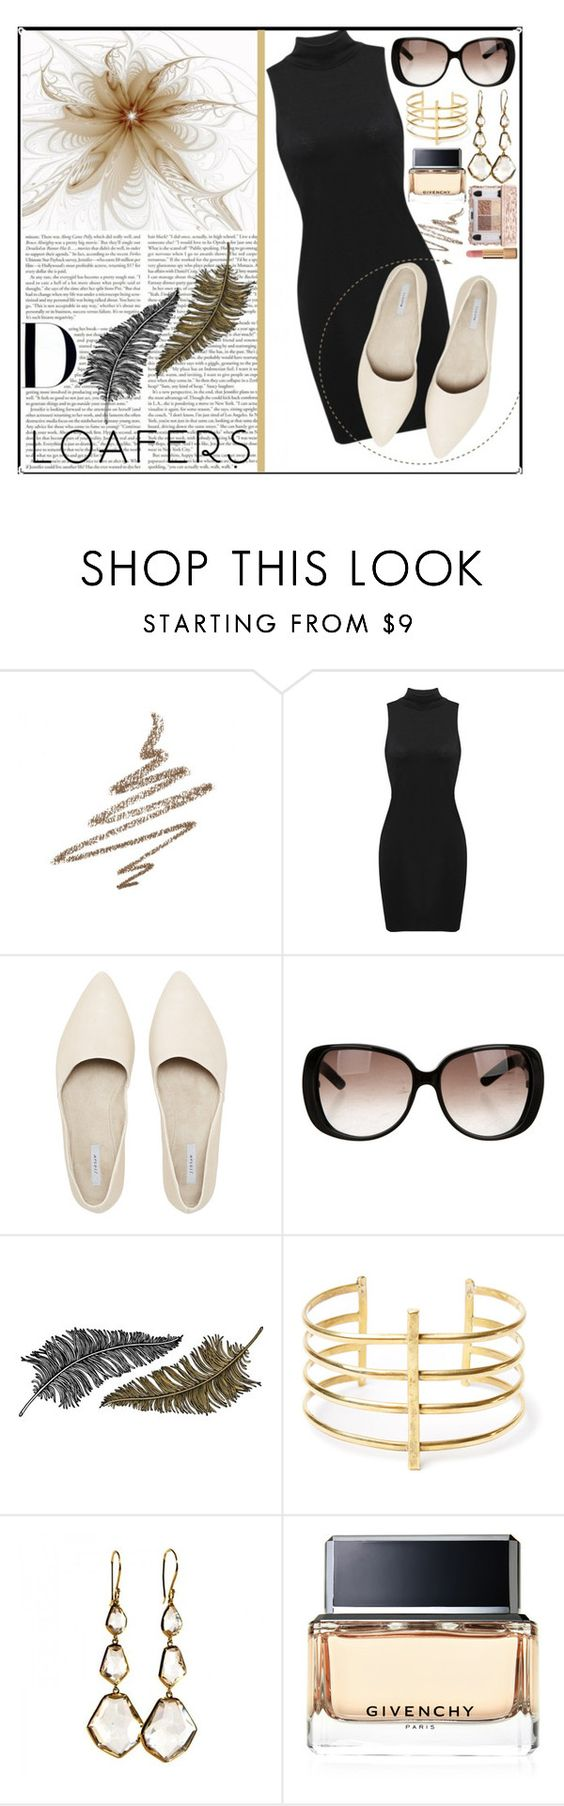 """Fall Footwear Trend: Loafers"" by sealy913 ❤ liked on Polyvore featuring Anastasia Beverly Hills, Gucci, Paperself, BauXo, Ippolita, Givenchy and Chanel"